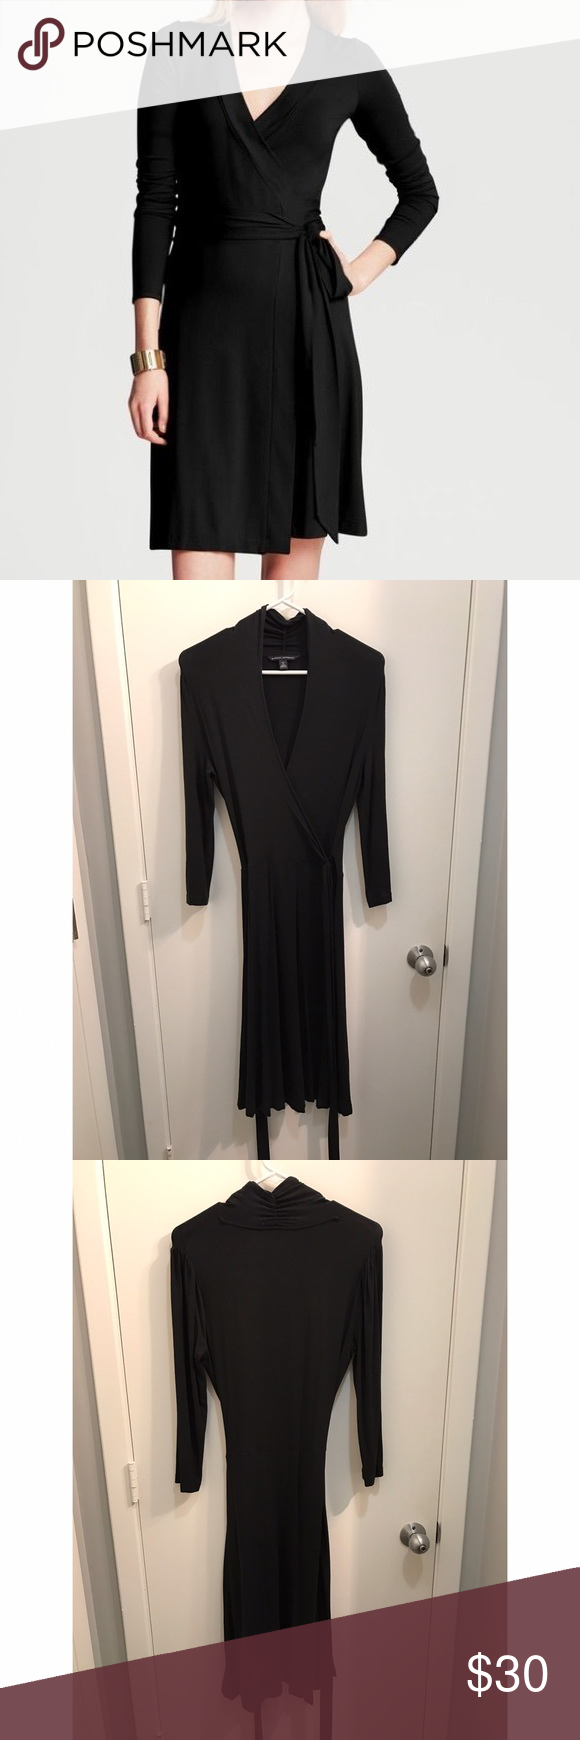 Banana Republic Black Gemma Wrap Dress Excellent used condition. Beautiful, classy wrap dress. Great staple! Size is tall small. Banana Republic Dresses Long Sleeve